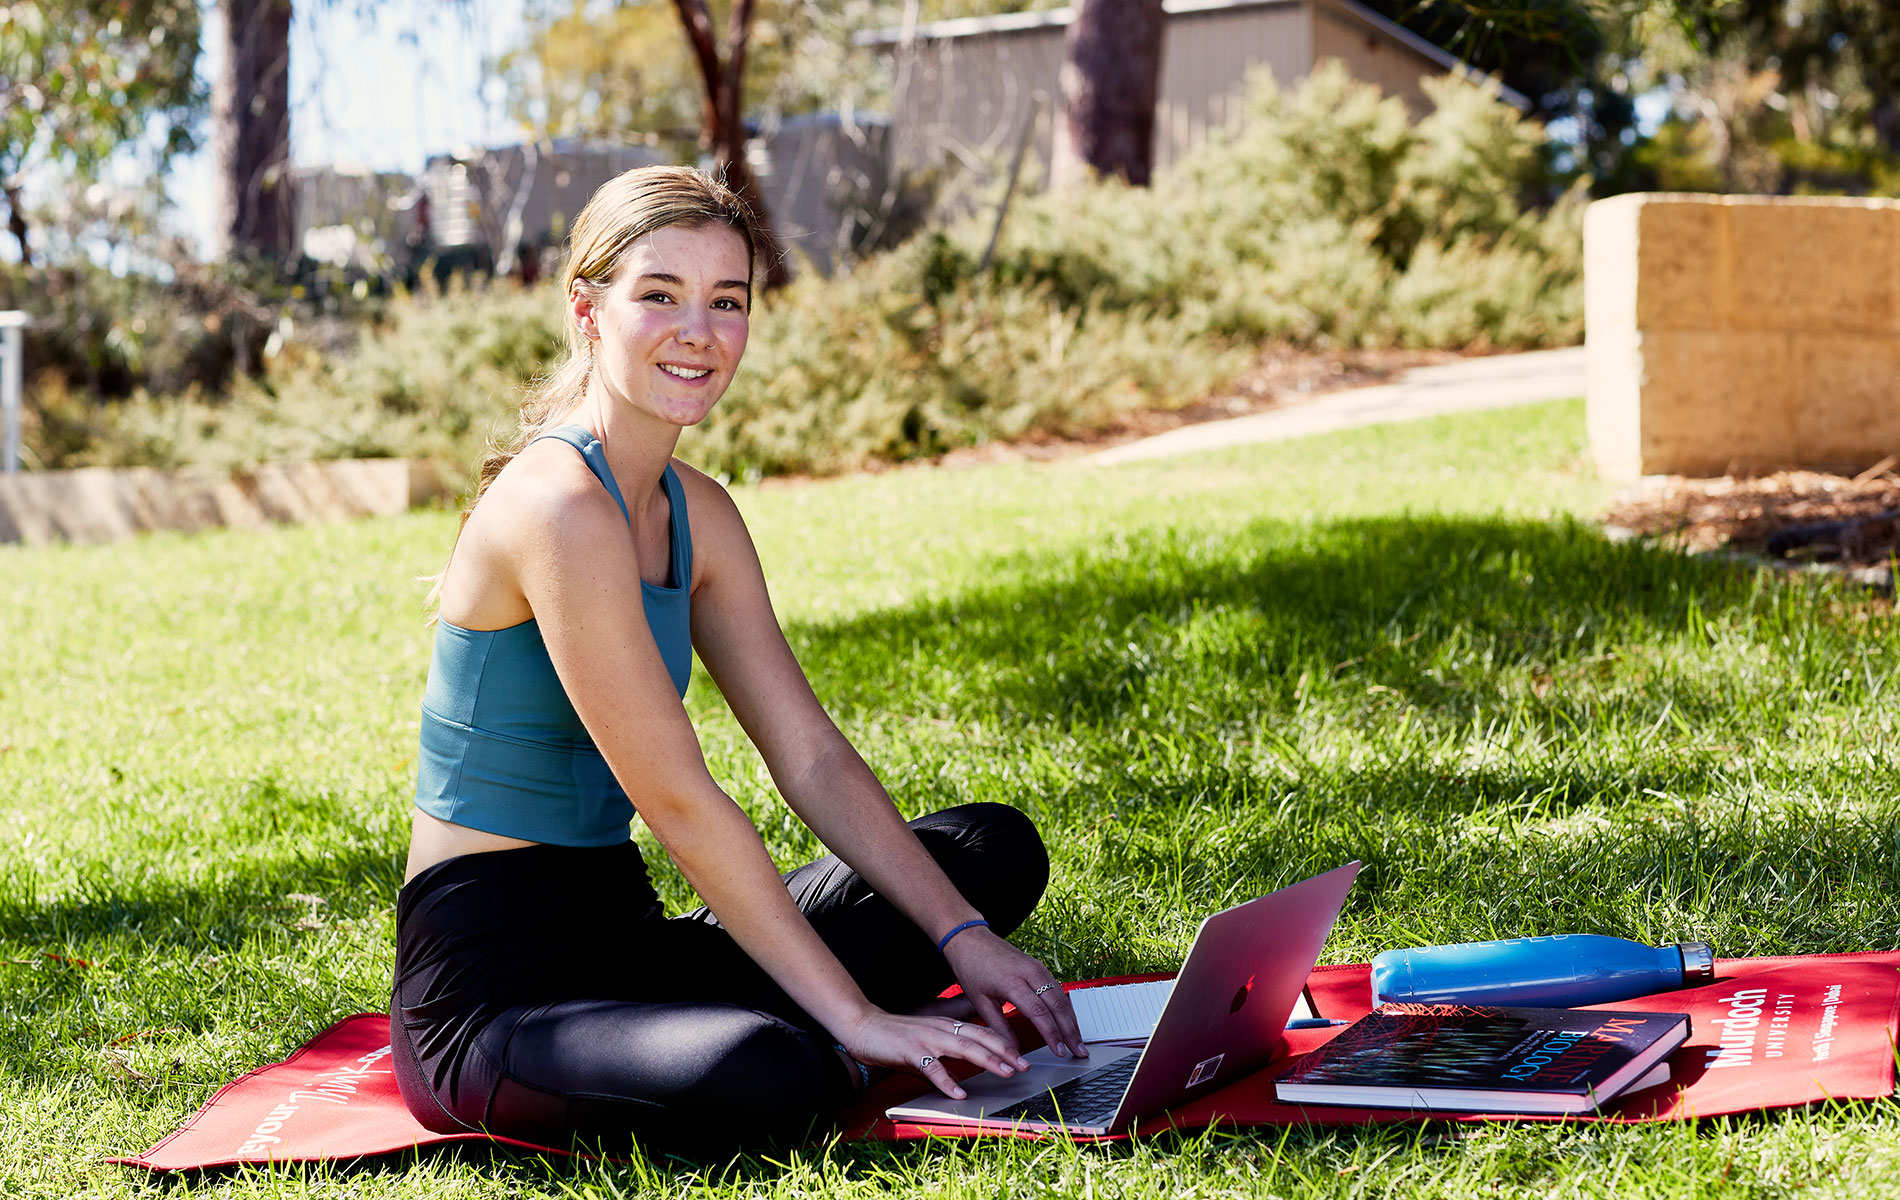 Gabby studying on her laptop while sitting on a yoga mat